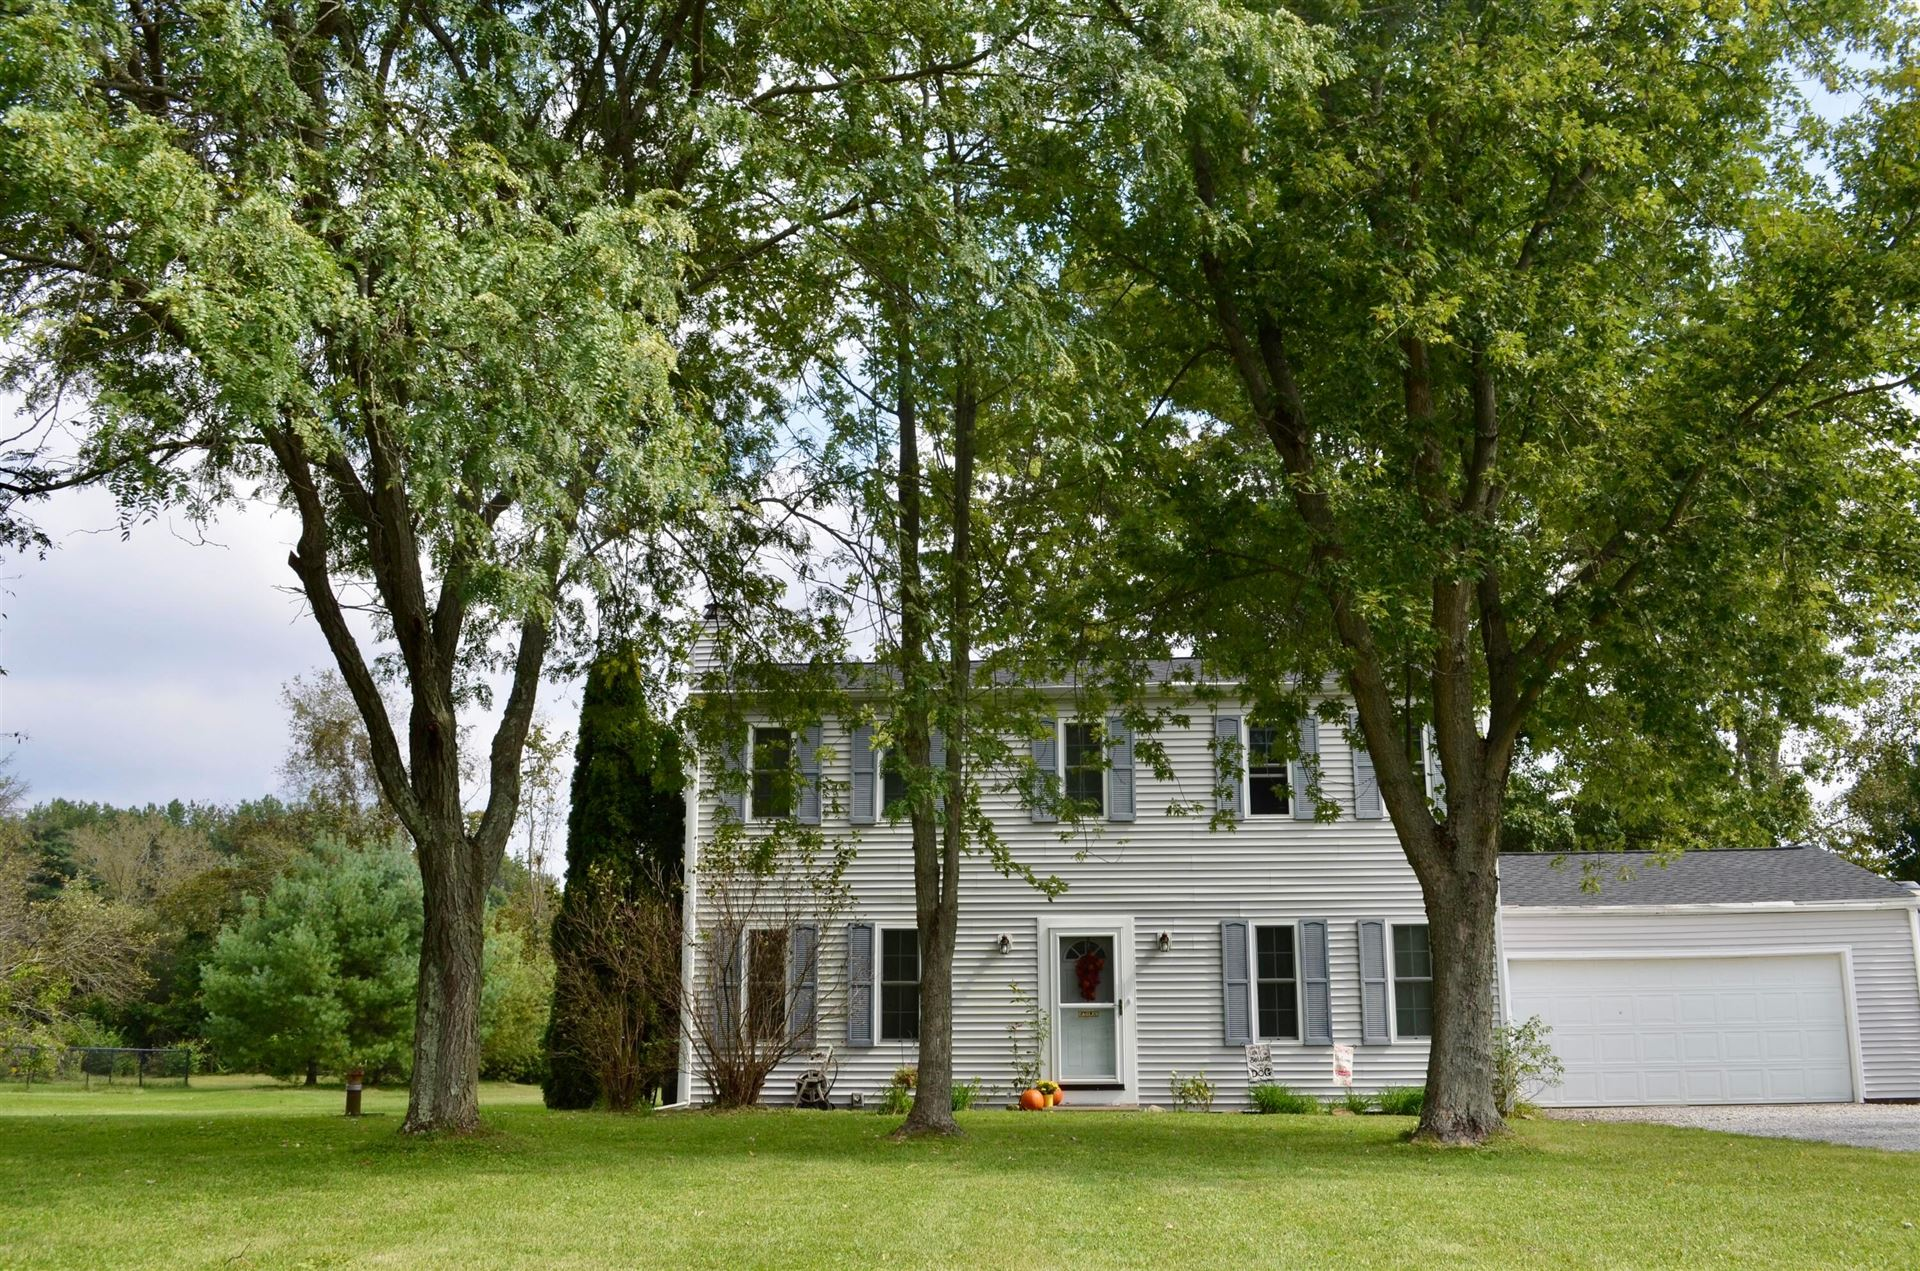 Photo of 3756 Pine Meadow Road, New Albany, OH 43054 (MLS # 221038566)